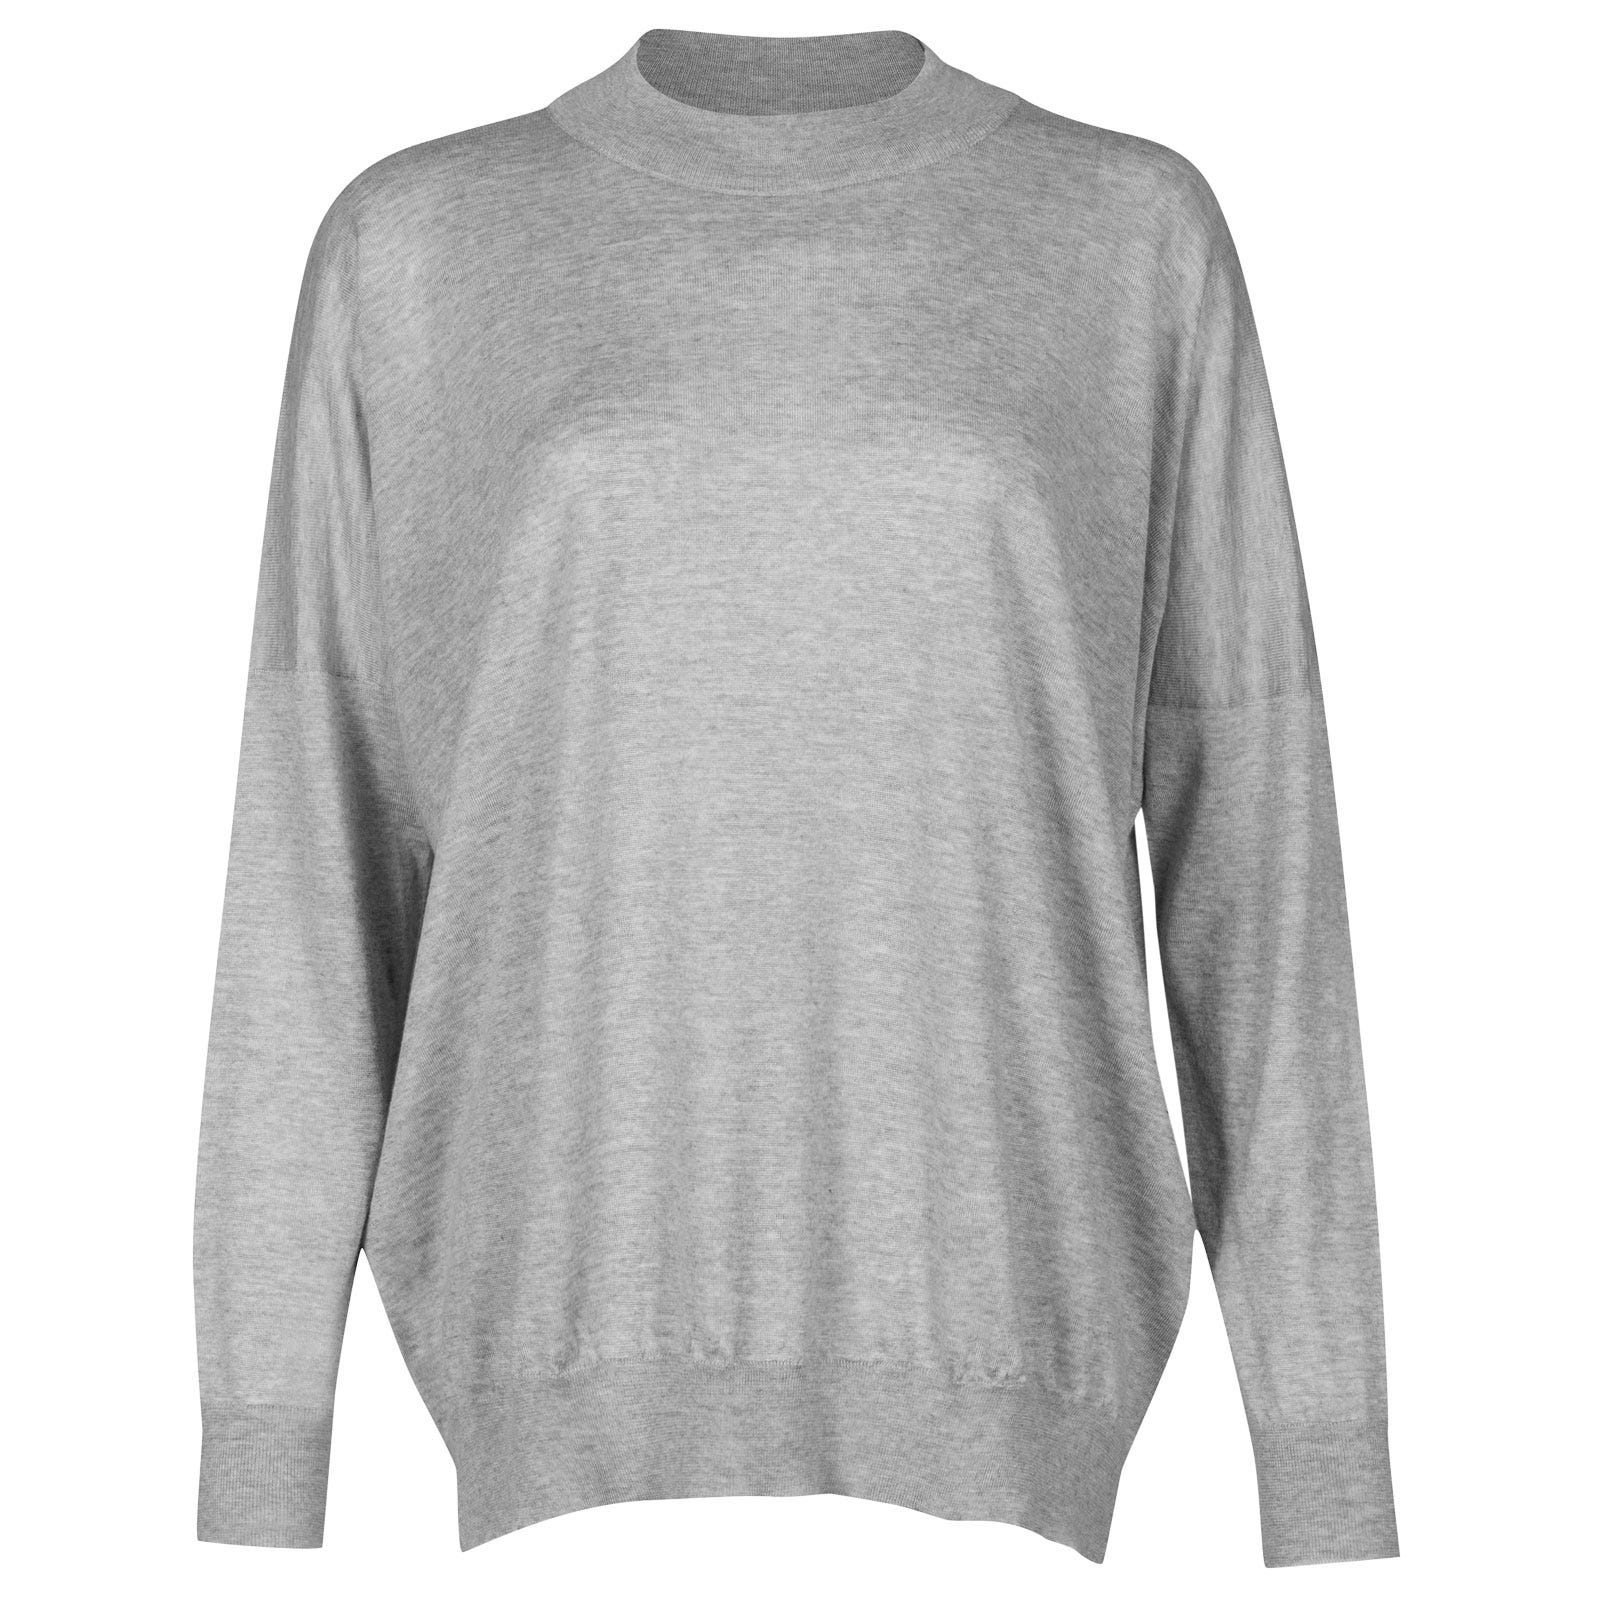 John Smedley osha Merino Wool and Cashmere Sweater in Soft Grey-L